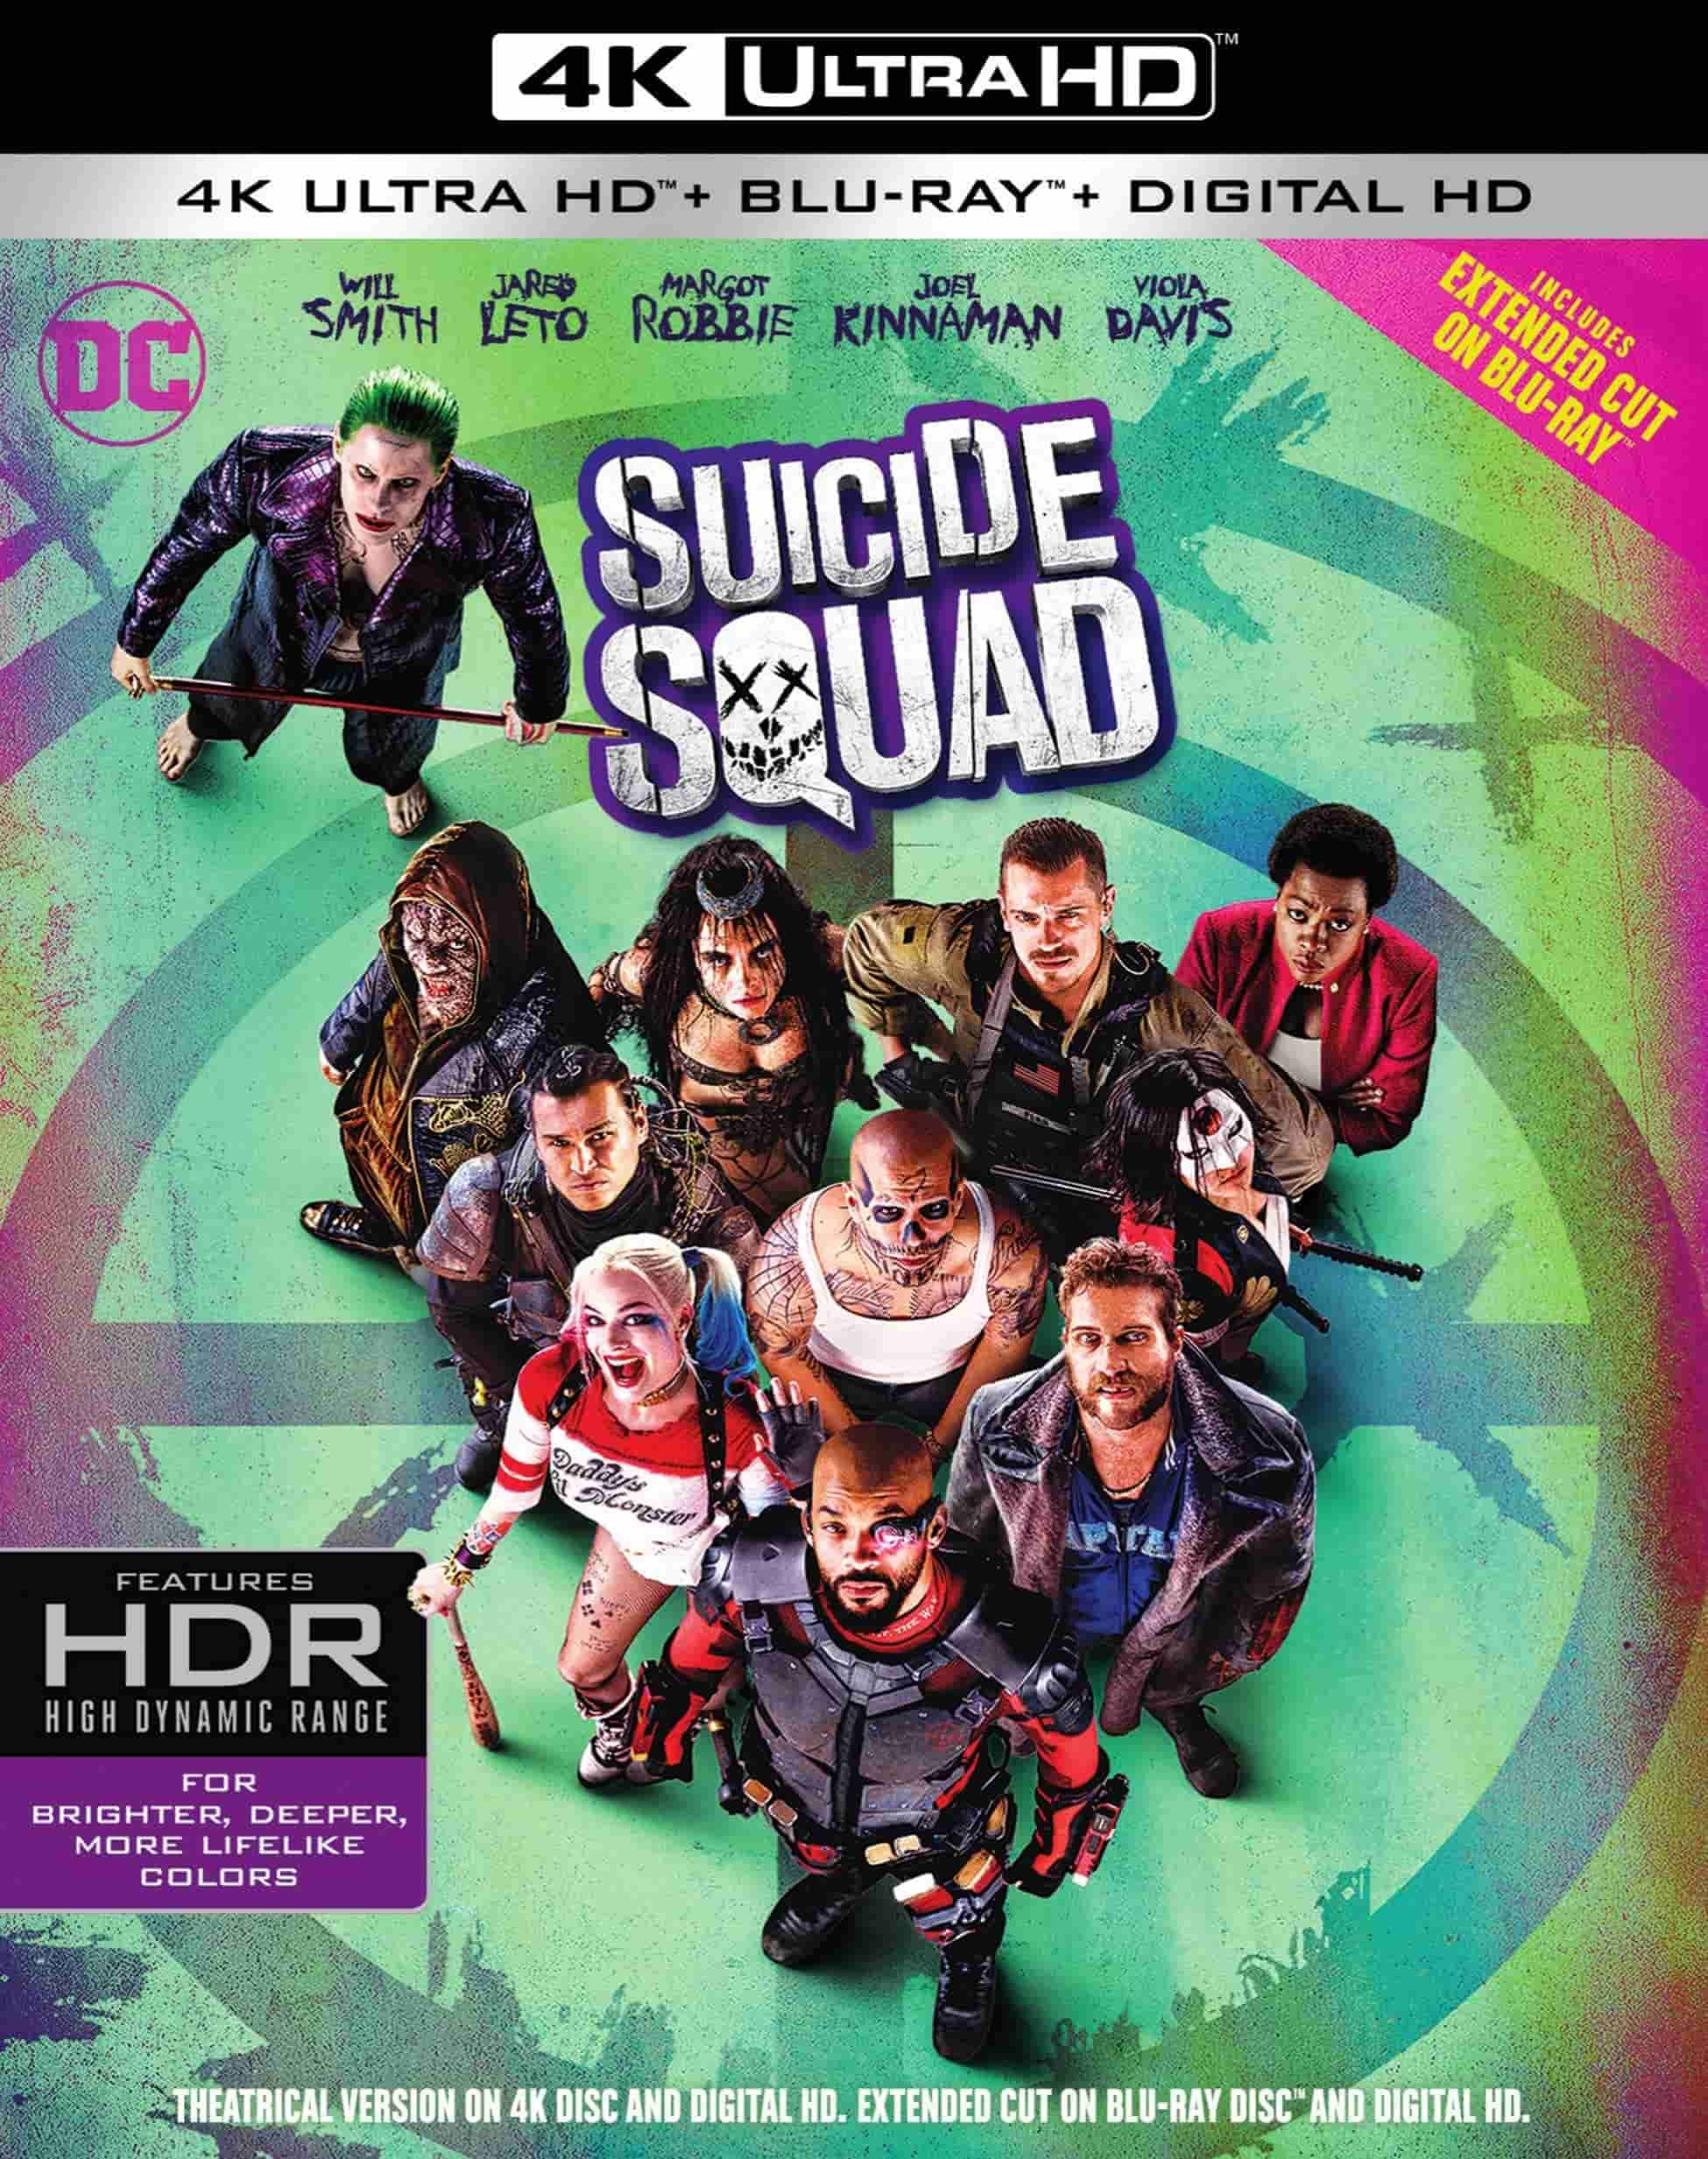 Suicide Squad 2016 MULTi UHD 2160p Blu-ray HDR ATMOS 7.1 HEVC-DDR